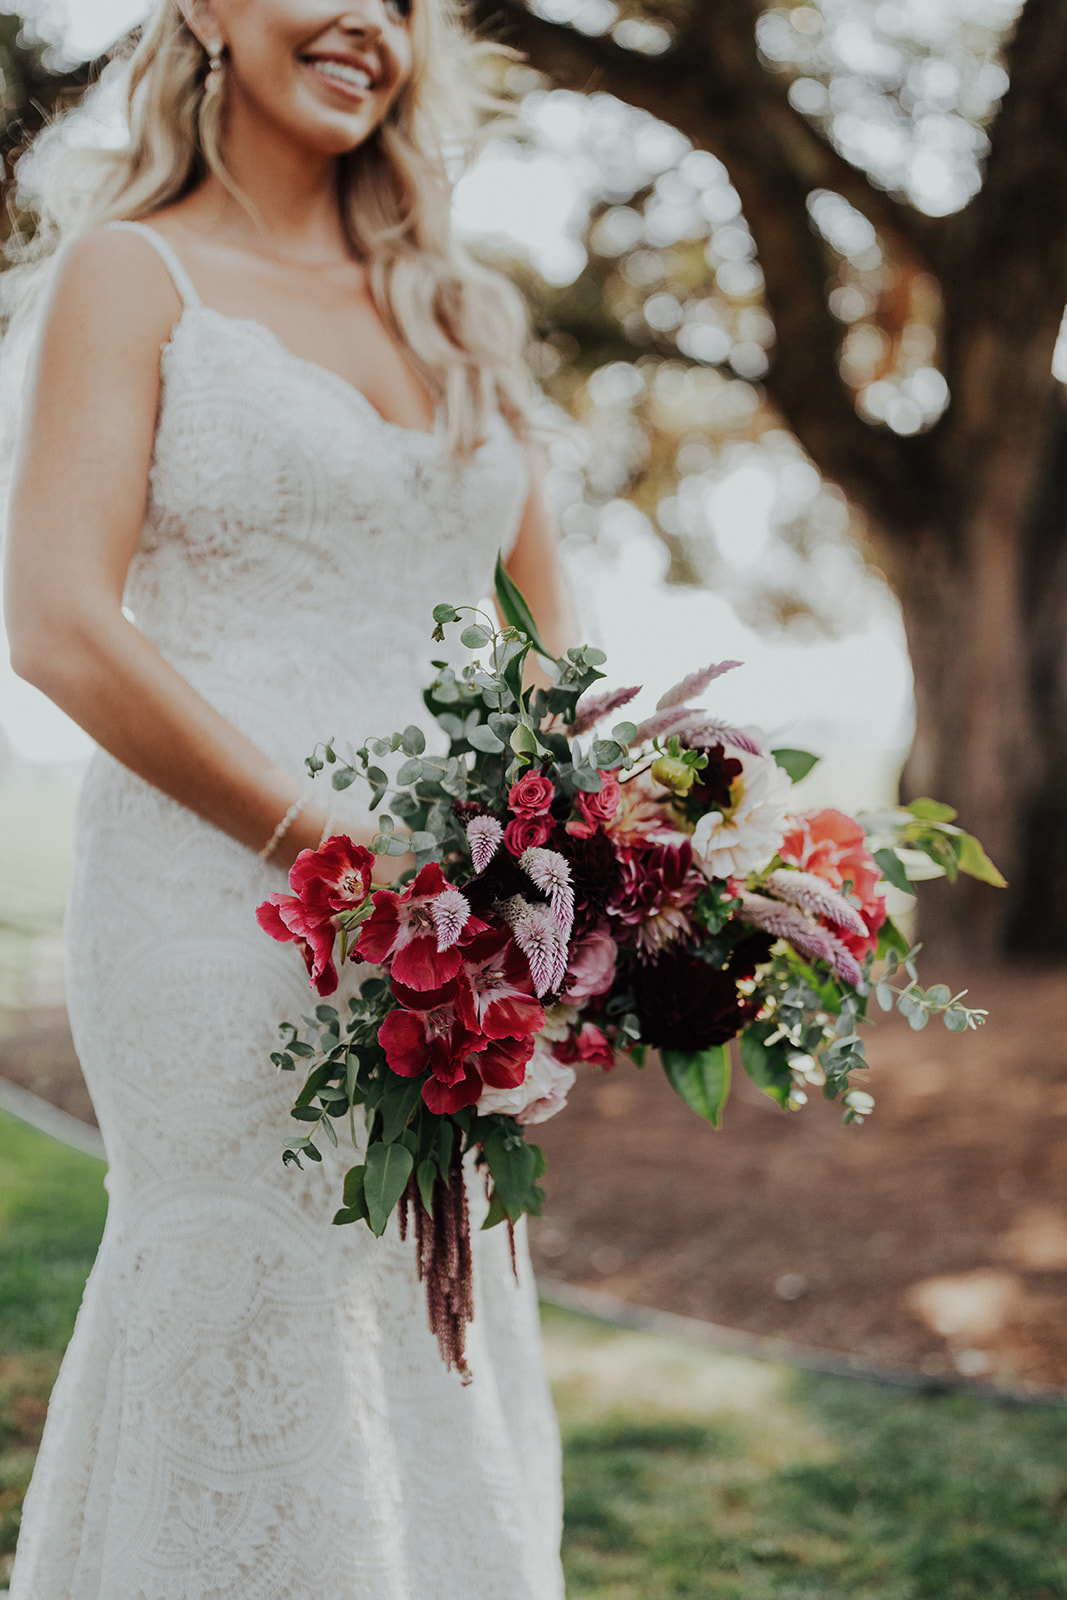 Rich and vibrant bridal bouquet in a lush and natural shape by Venn Floral at Ru's Farm in Healdsburg photographed by Logan Cole.